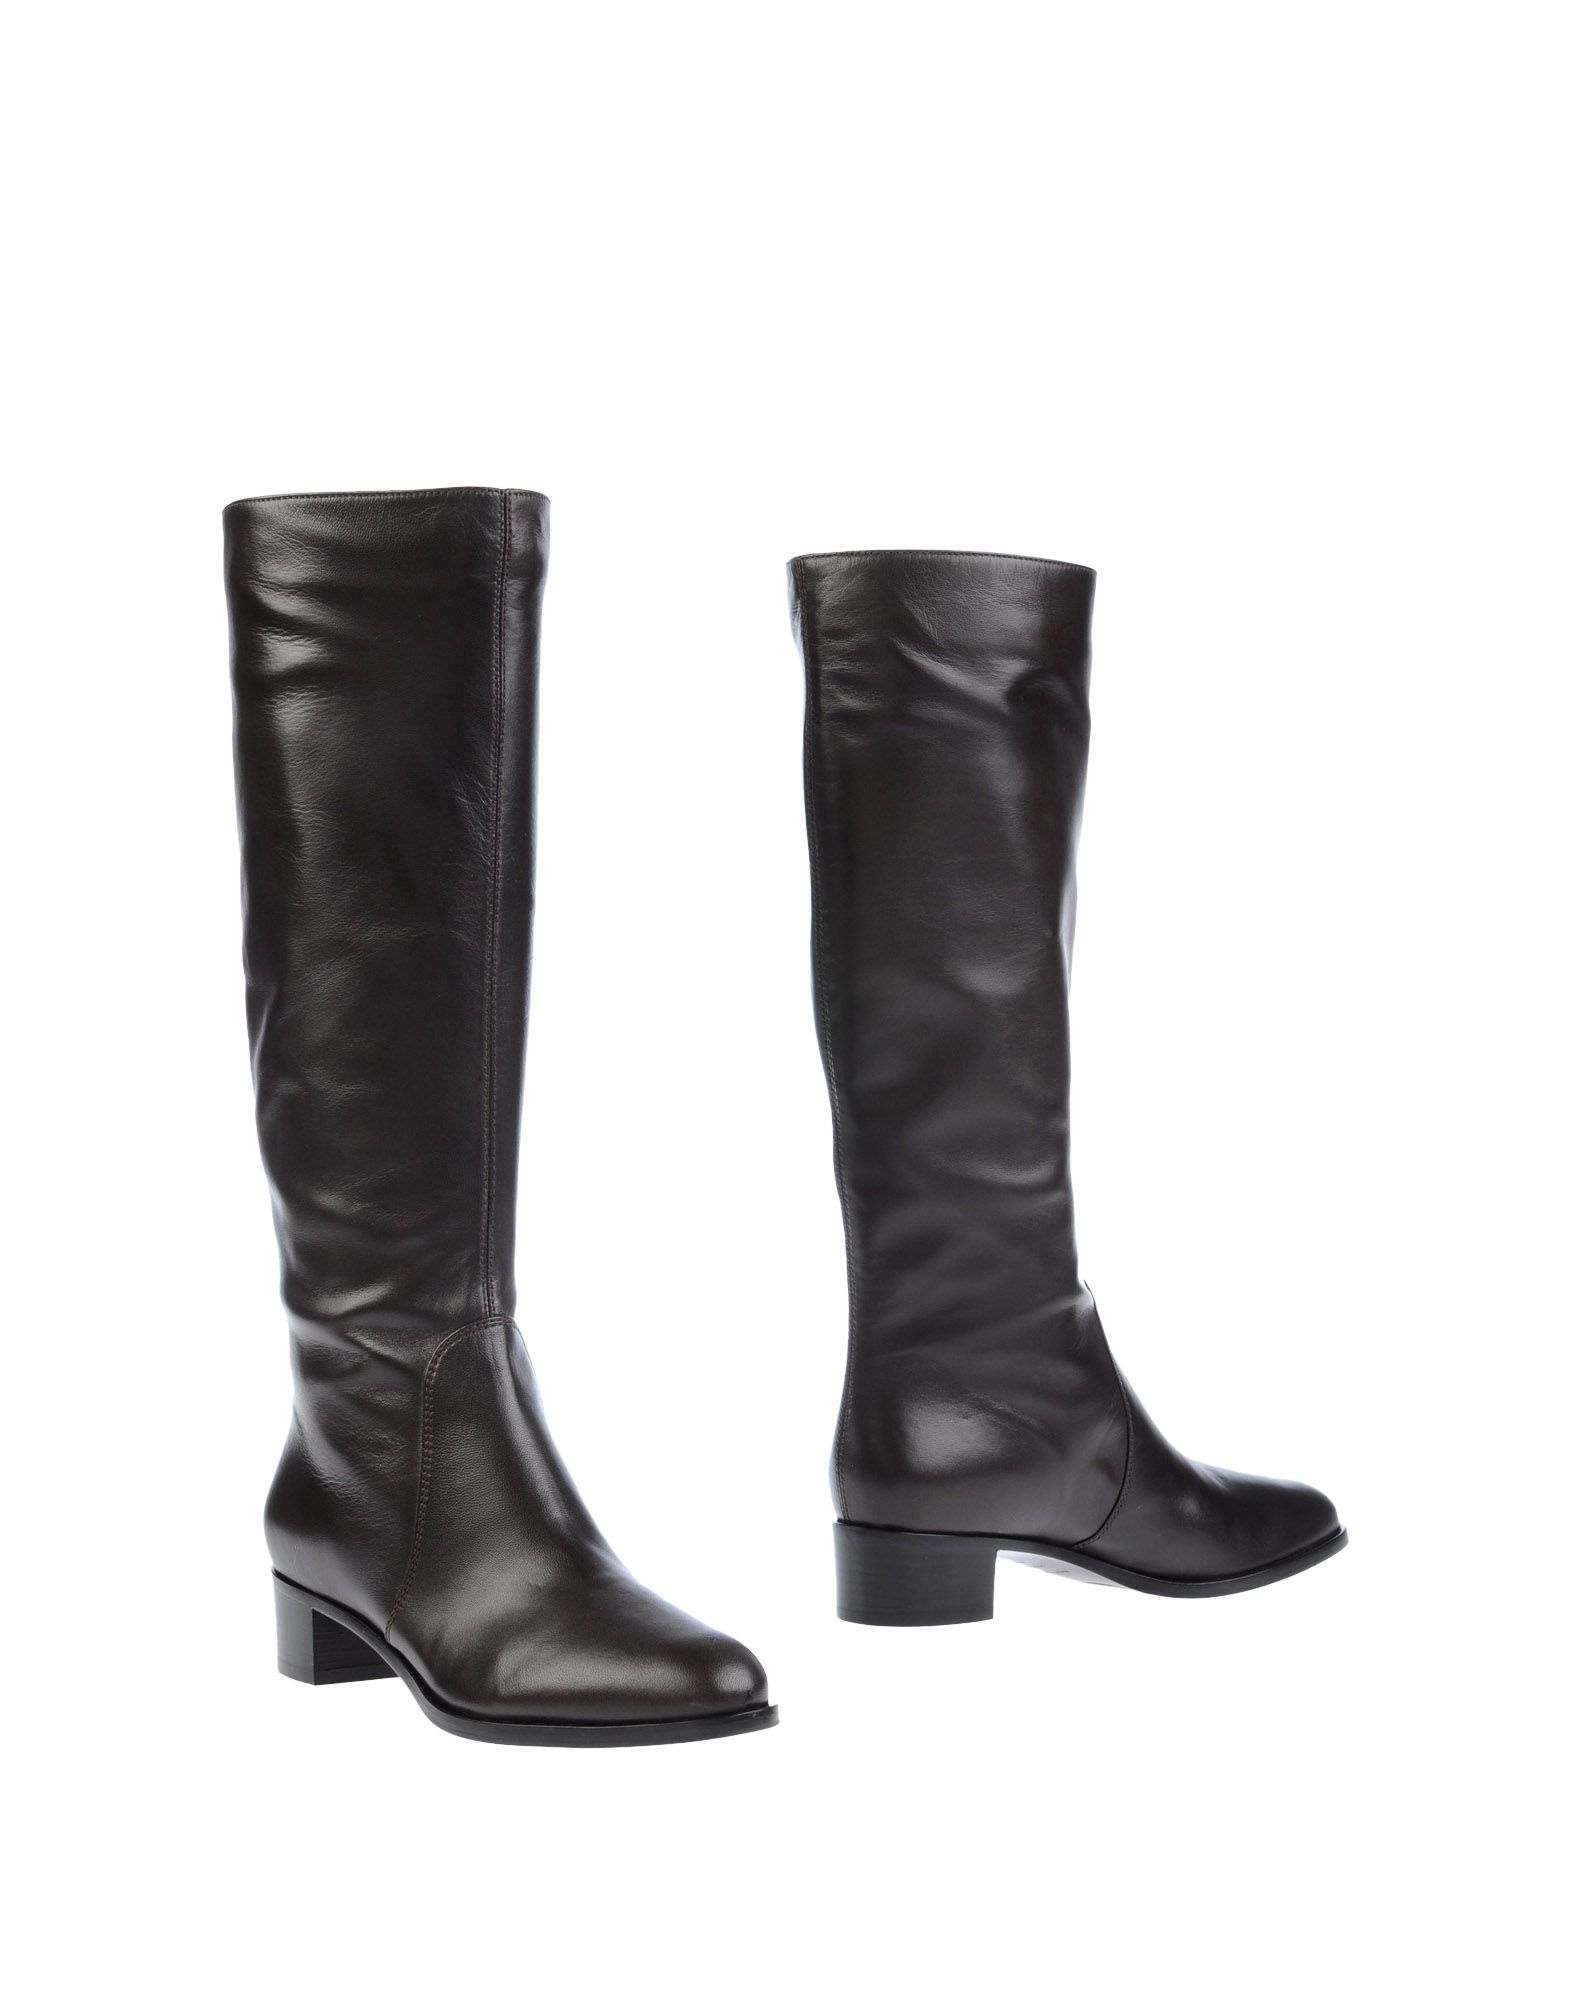 Sergio Rossi Boots - Women Sergio Rossi Boots online on 44815132CX  United Kingdom - 44815132CX on 255f44